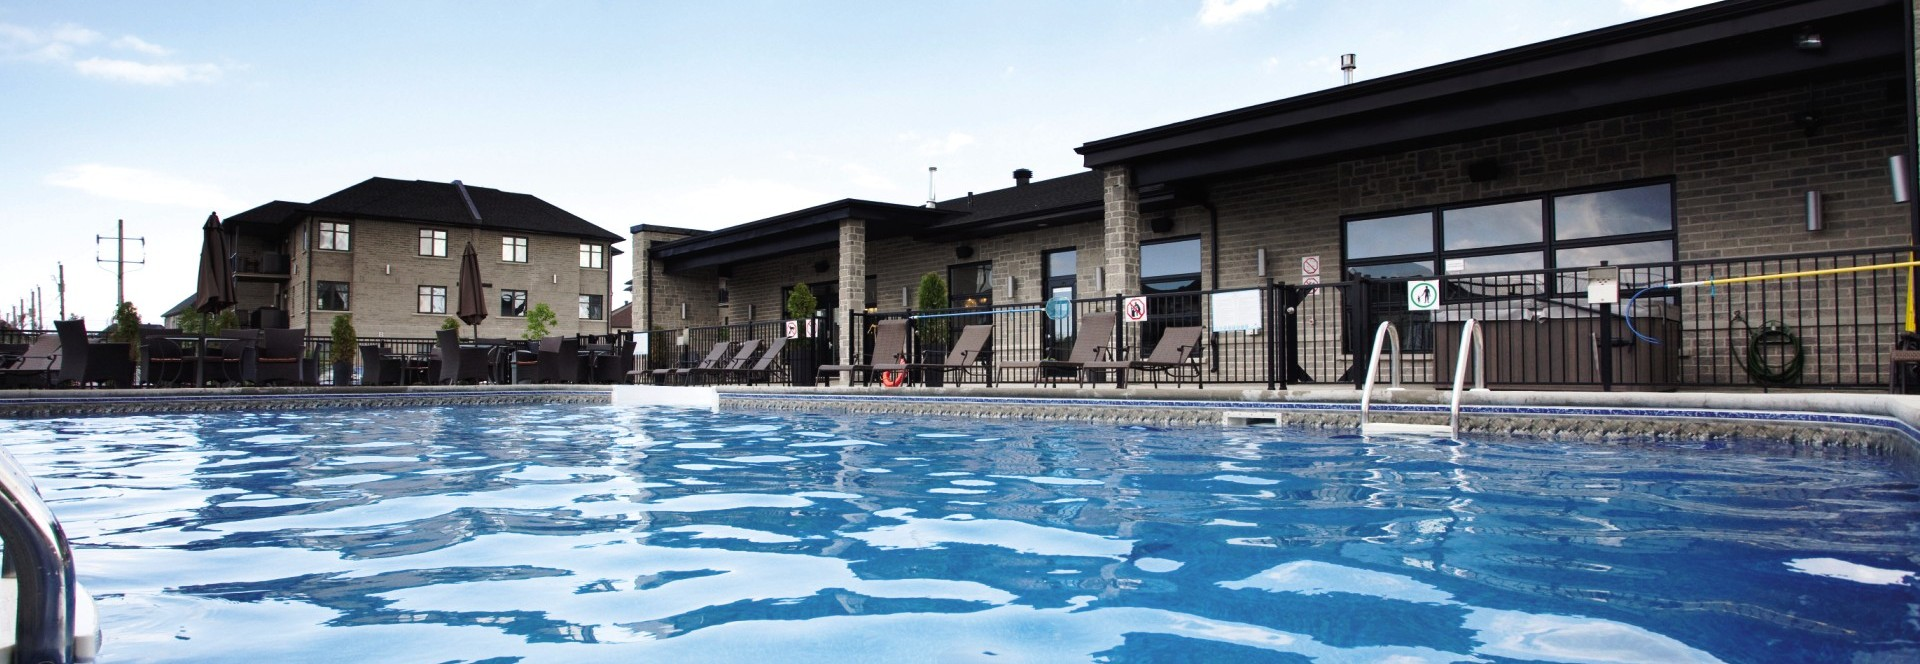 Services de location de condos du grand montr al for Club piscine cure labelle laval